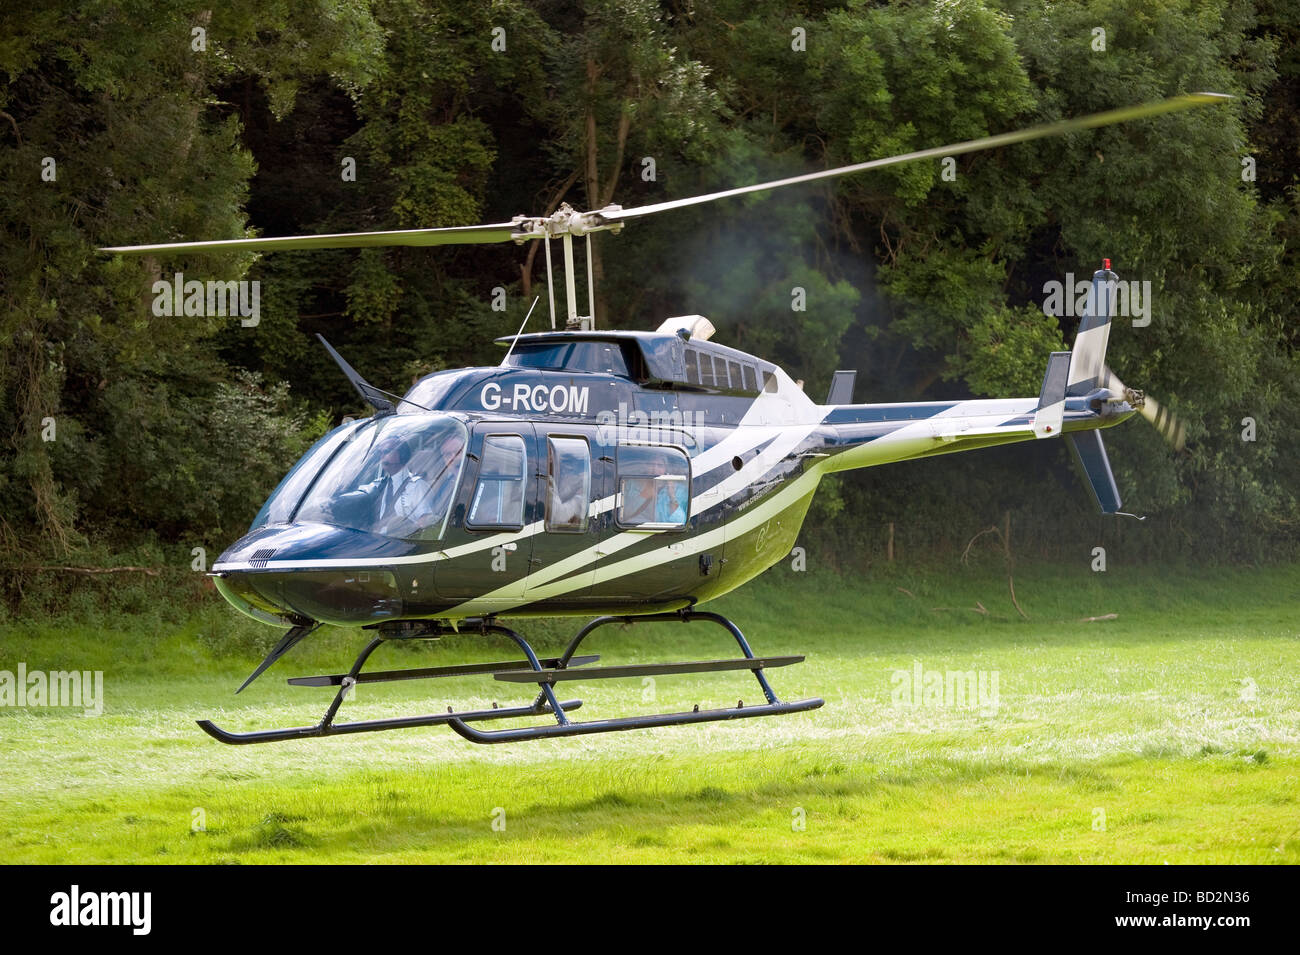 Helicopter taking off at Herefordshire Country Fair, UK. Helicopter take off or landing in field. Passengers on - Stock Image